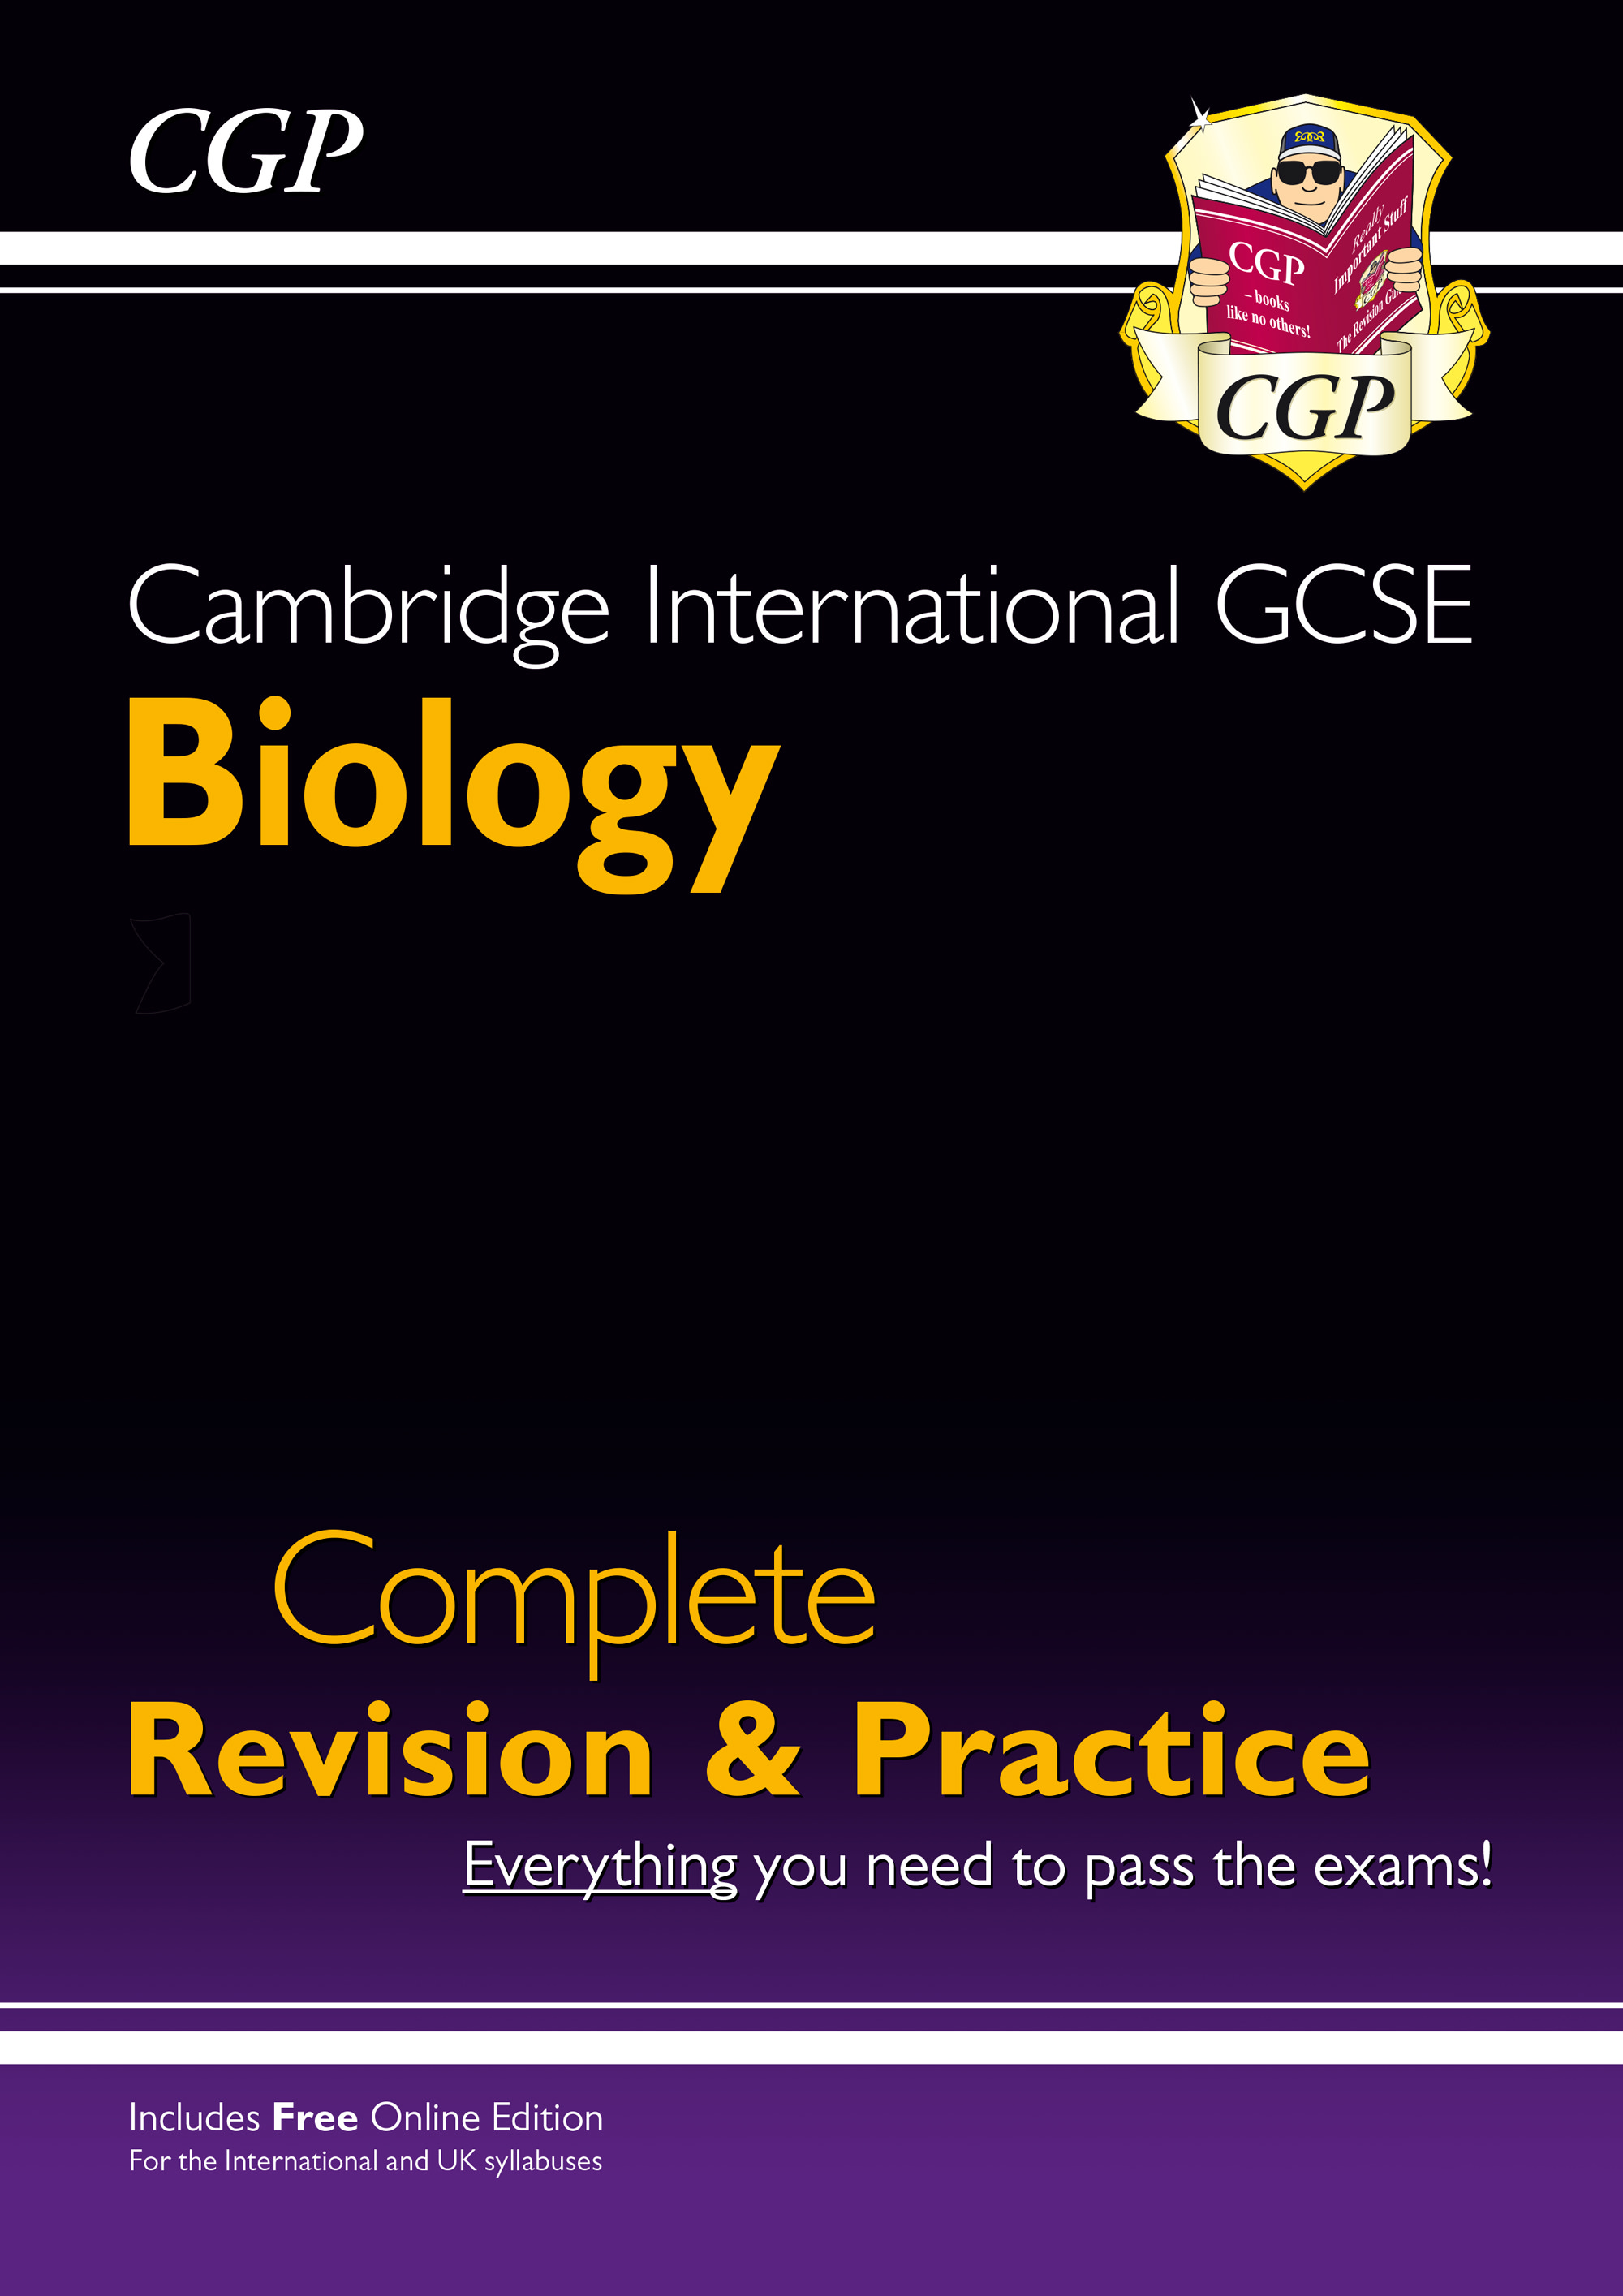 BISI41 - New Cambridge International GCSE Biology Complete Revision & Practice: Core & Extended + On